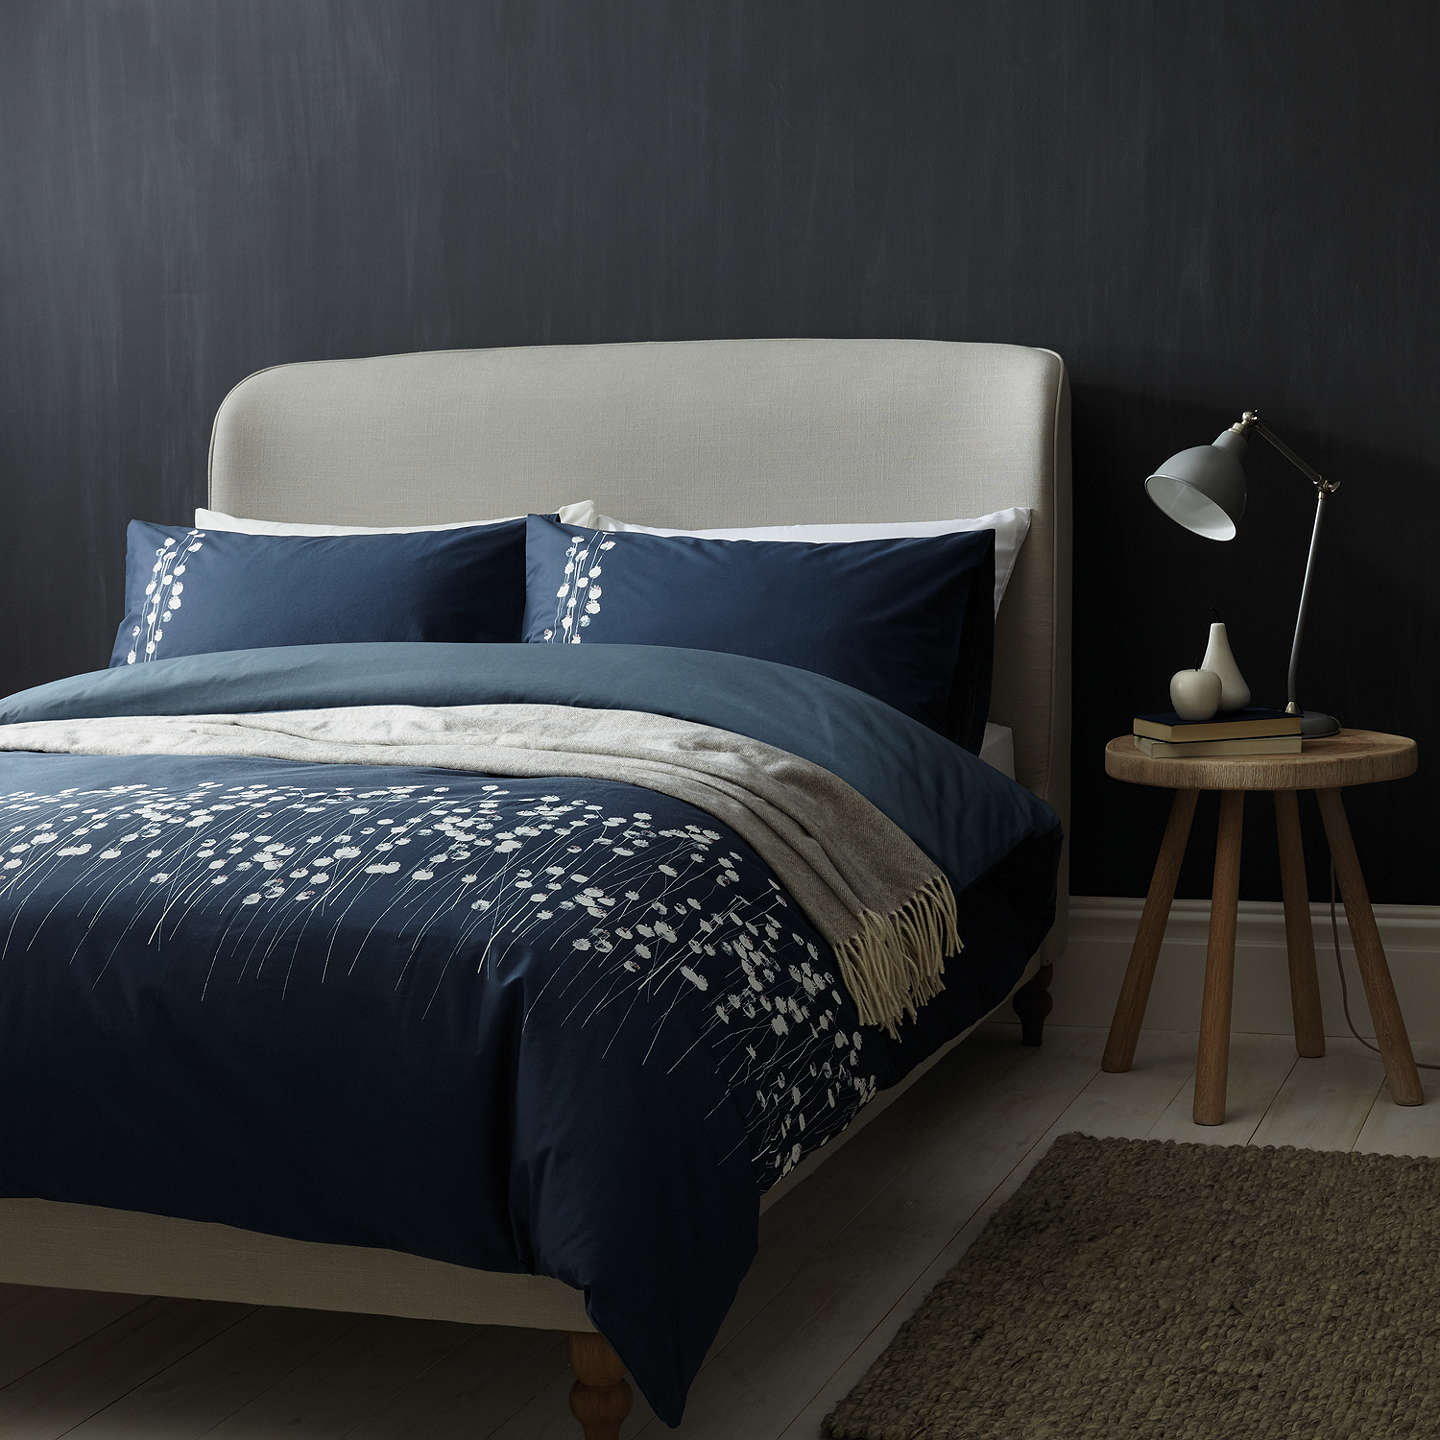 croft collection poppyheads cotton bedding at john lewis. Black Bedroom Furniture Sets. Home Design Ideas